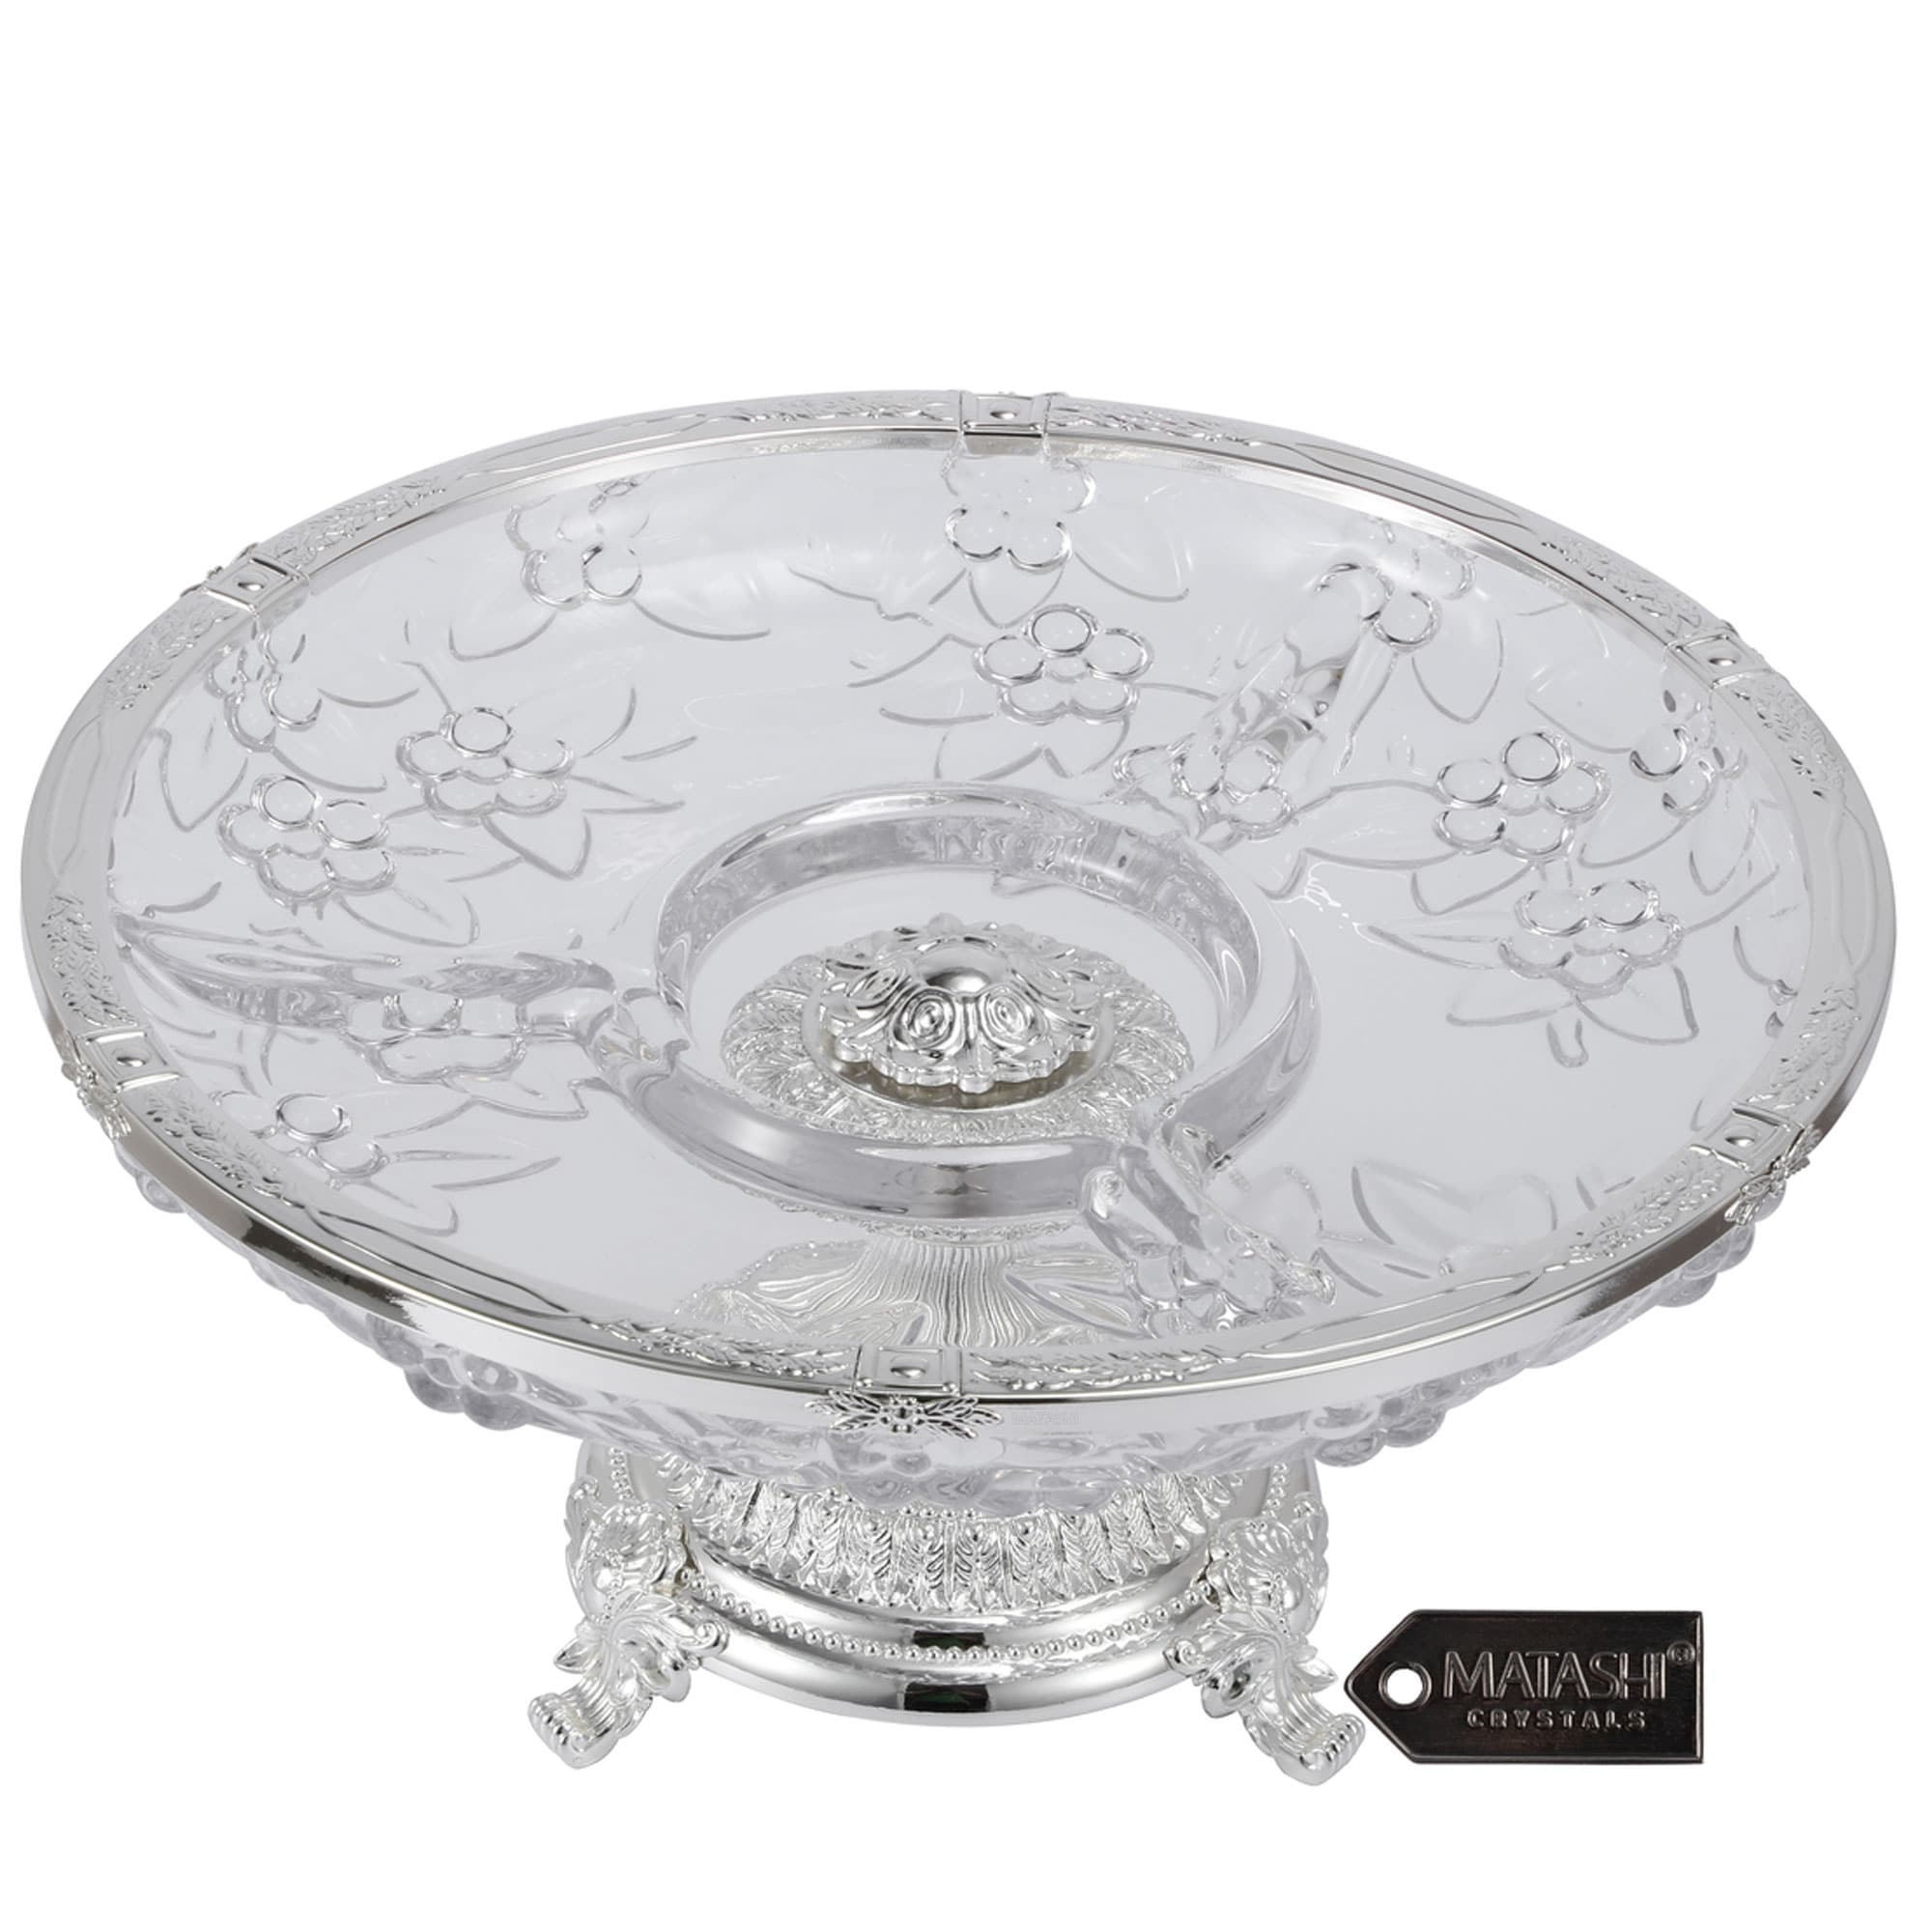 Matashi Crystal 3 Sectional Centerpiece Decorative Bowl Round Serving Platter With Silver Plated Pedestal Base For Weddings Overstock 32531027